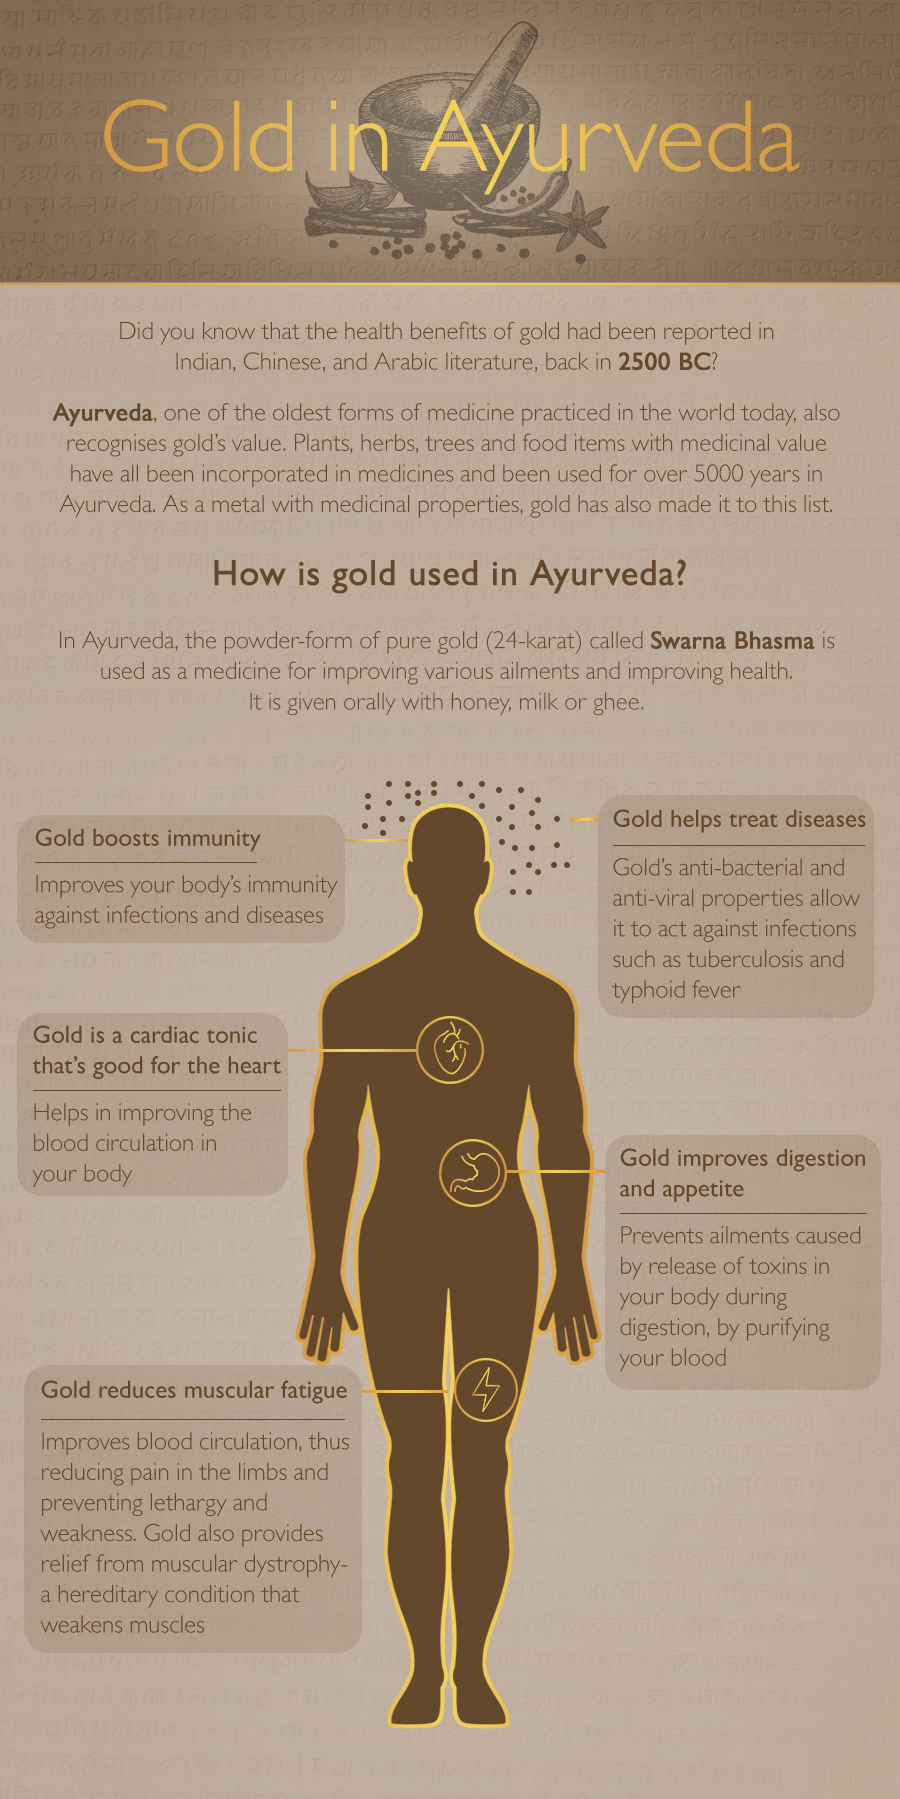 Gold in Ayurveda